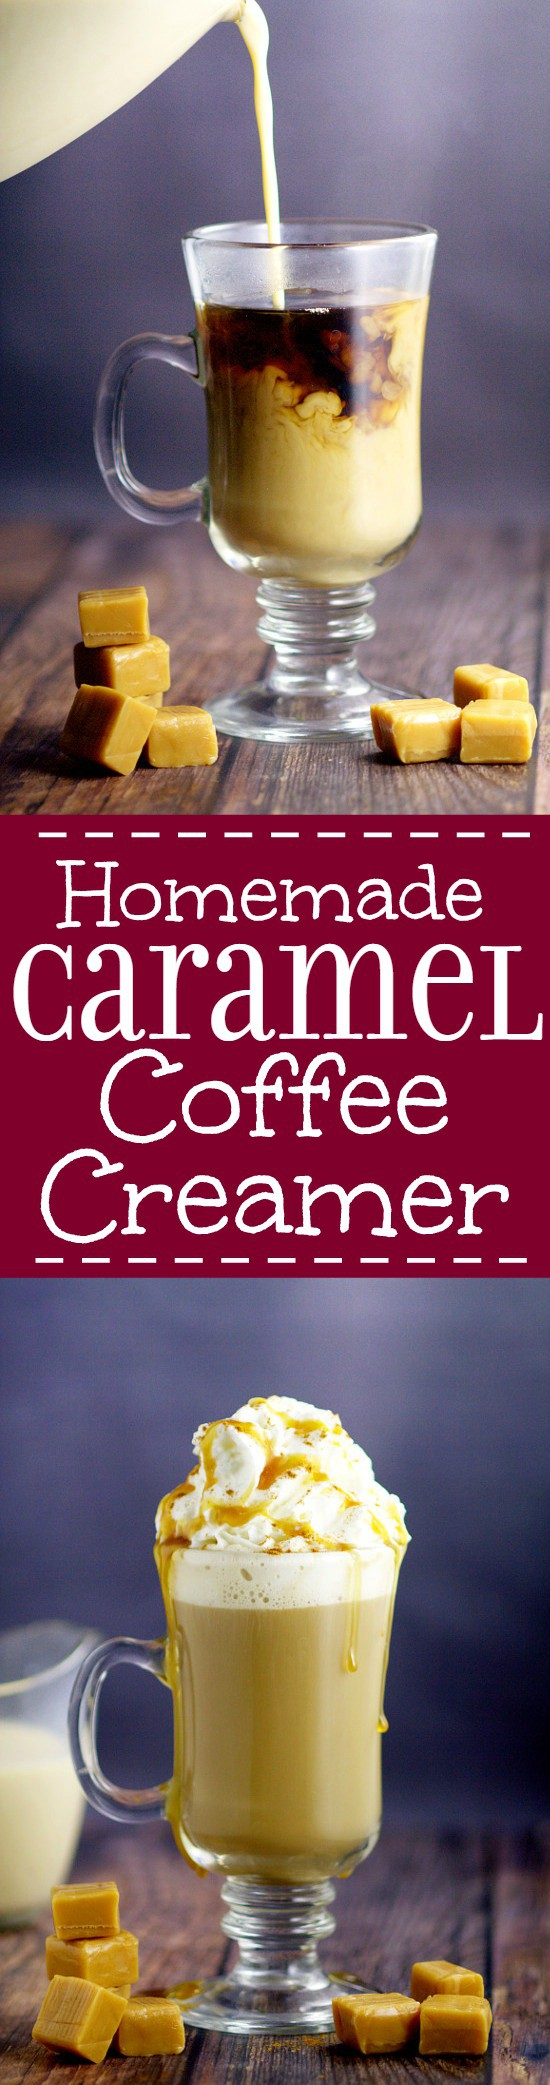 Smooth, creamy, and sweet Homemade Caramel Coffee Creamerrecipe in your hot morning coffee is the perfect way to start the day! Oh my! This is seriously amazing!